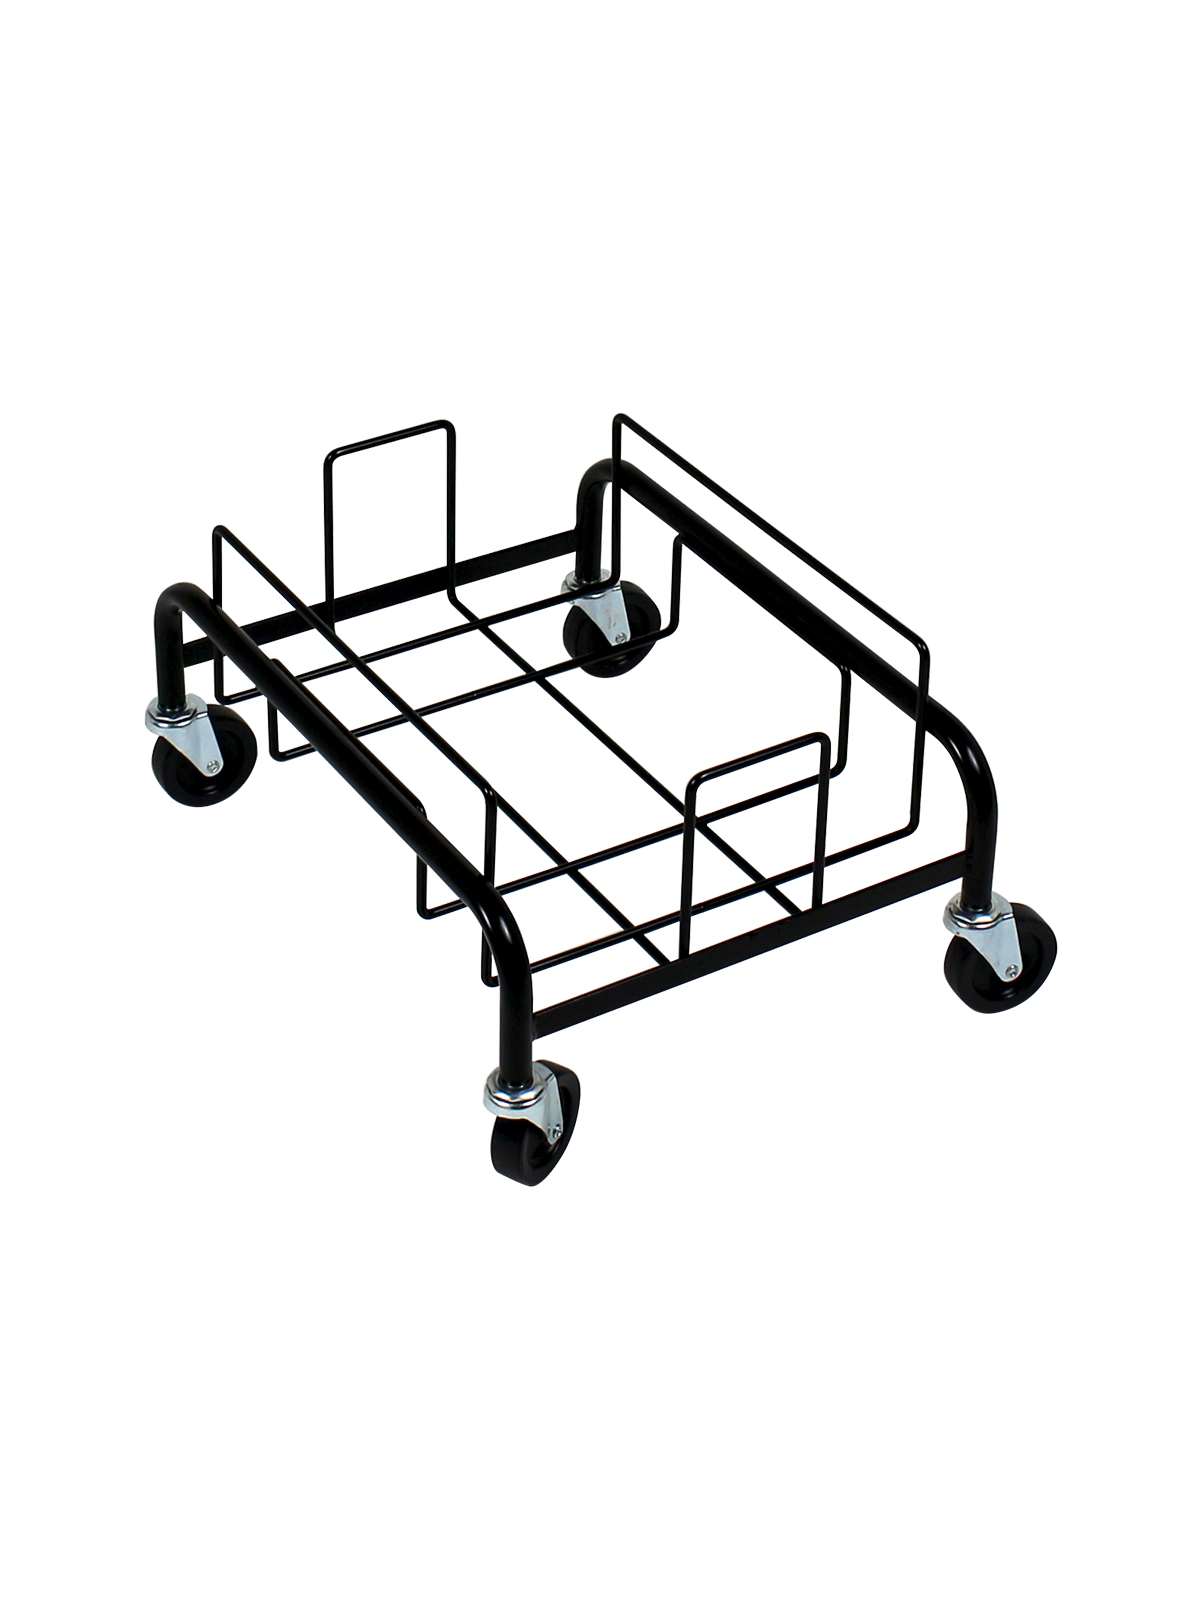 WASTE WATCHER® XL - SINGLE DOLLY [1 DOLLY, 4 CASTERS] - BLACK title=